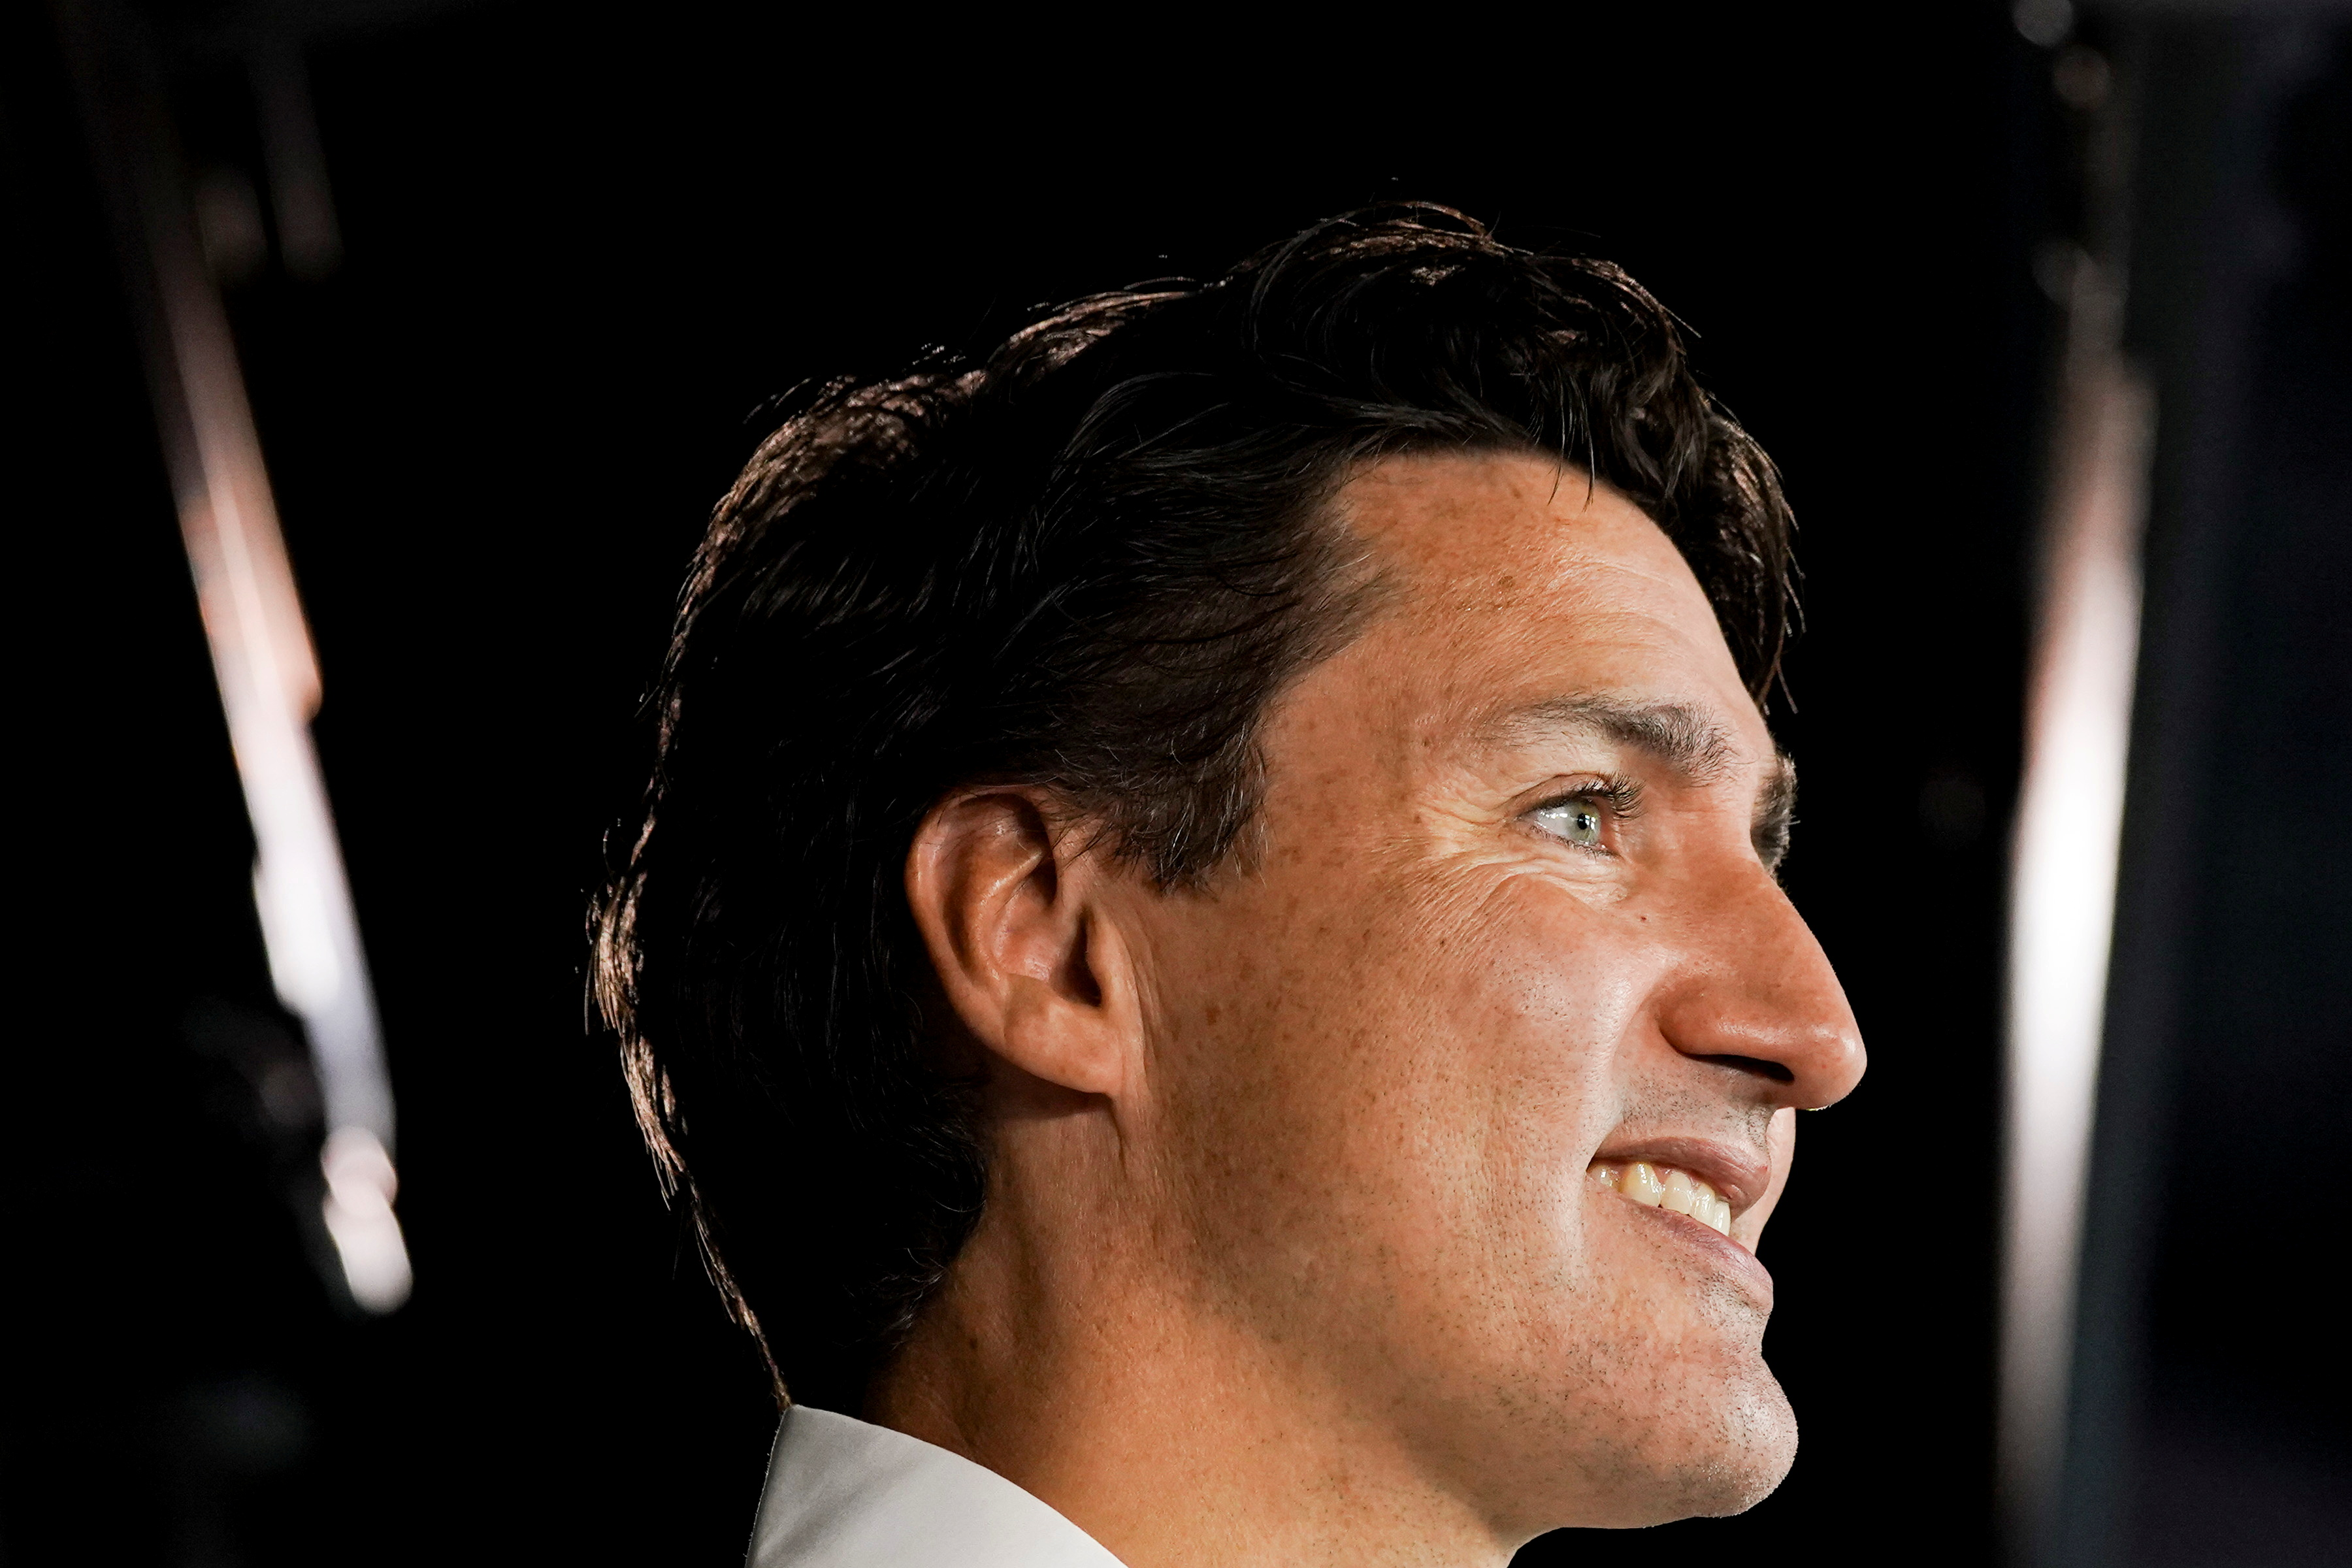 Canada's Liberal Prime Minister Justin Trudeau speaks at the Discovery Centre during an election campaign stop in Halifax, Nova Scotia, Canada September 15, 2021. REUTERS/Carlos Osorio